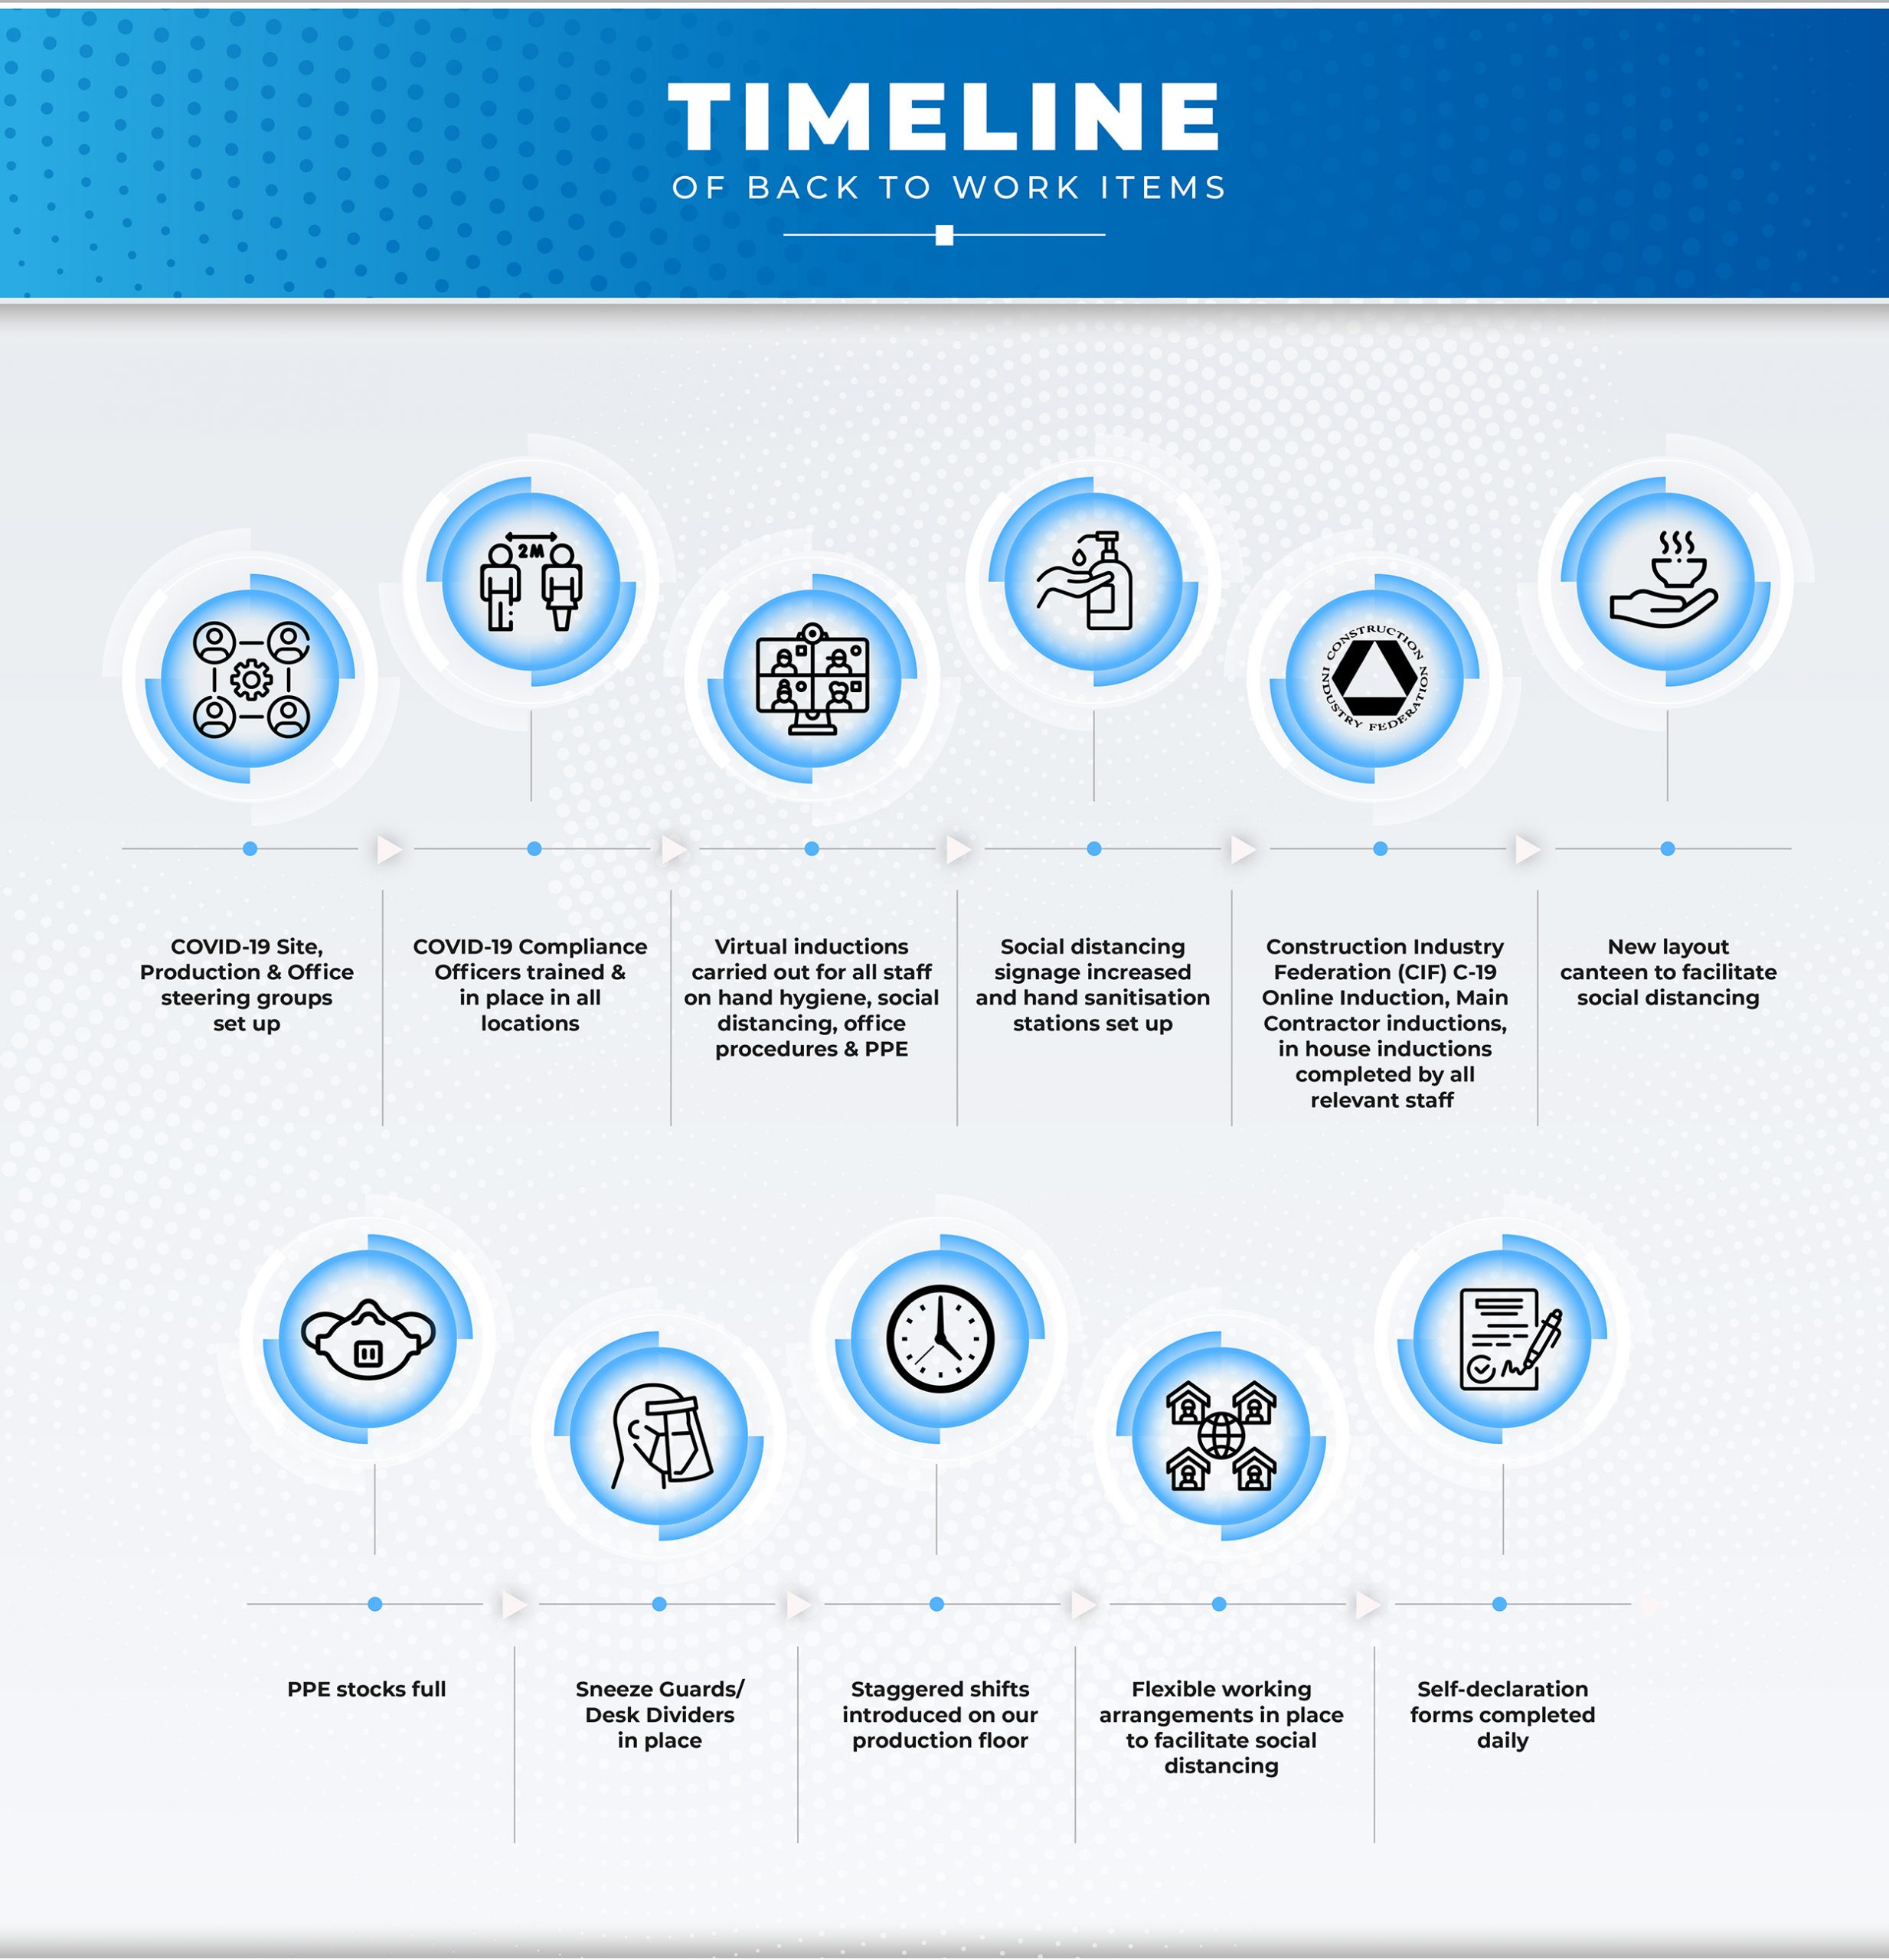 Williaam Cox graphic on timeline of back to work items